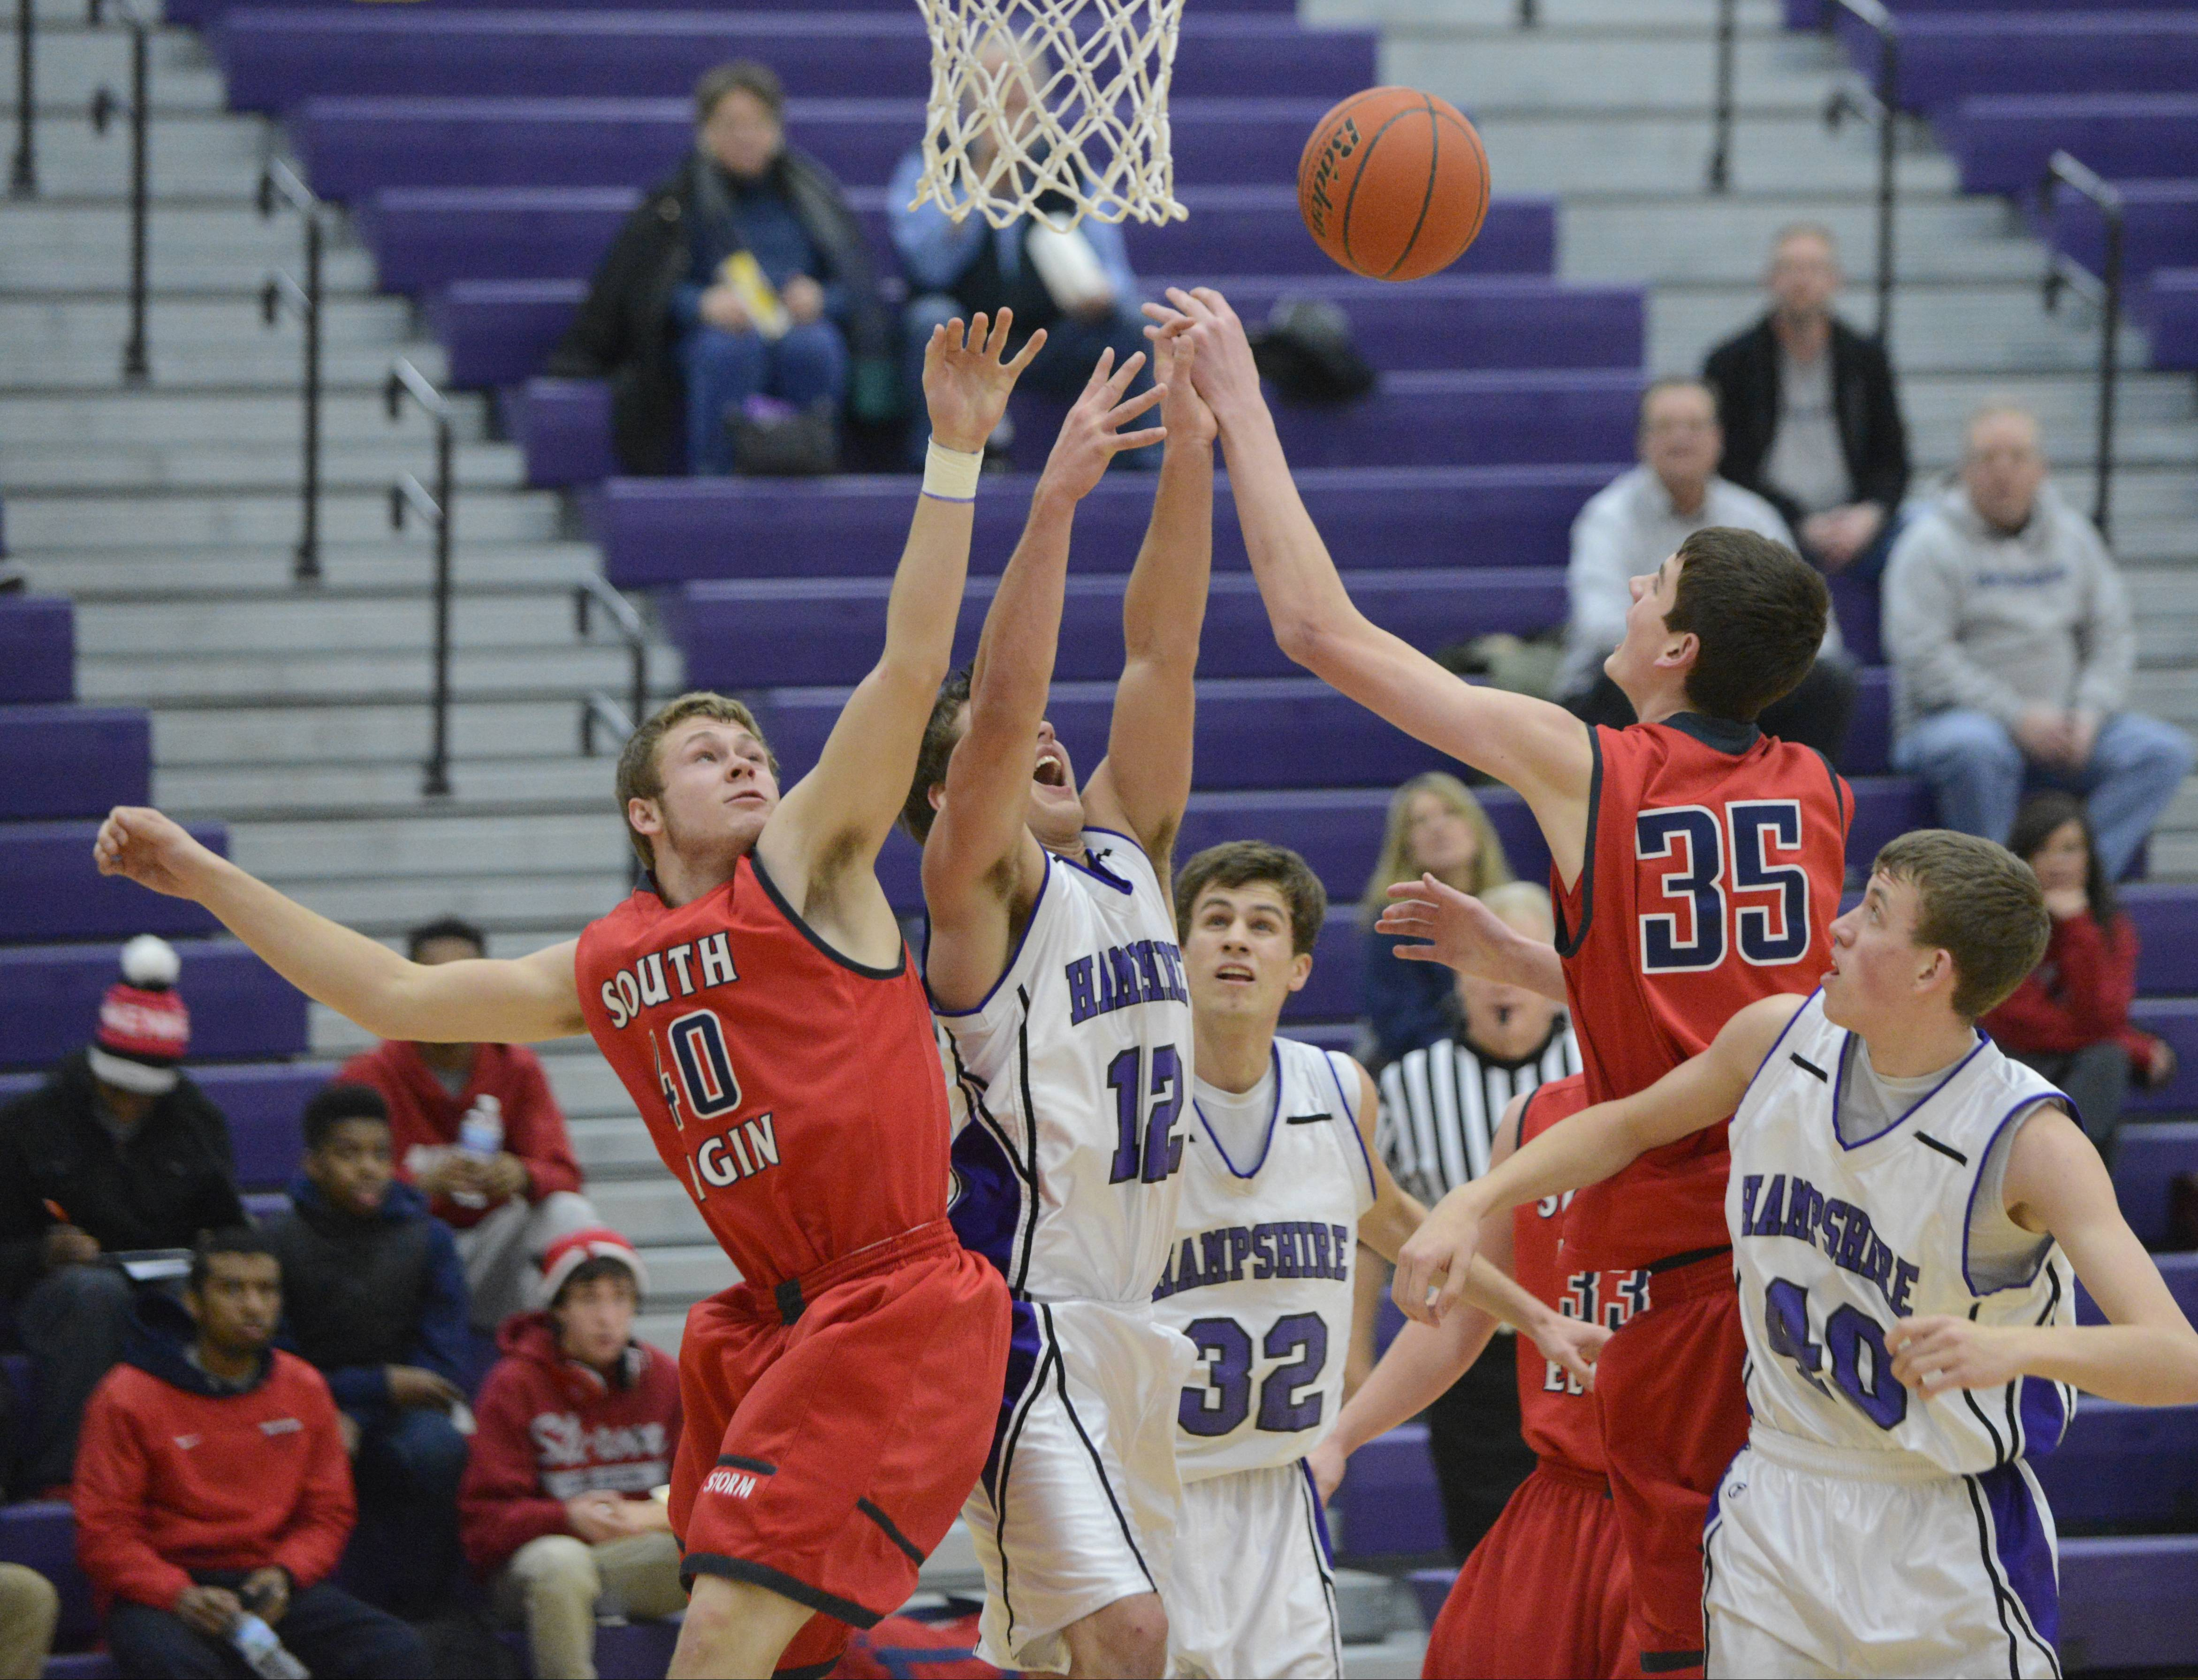 Images from the Hampshire vs South Elgin boys basketball game Wednesday, February 12, 2014.